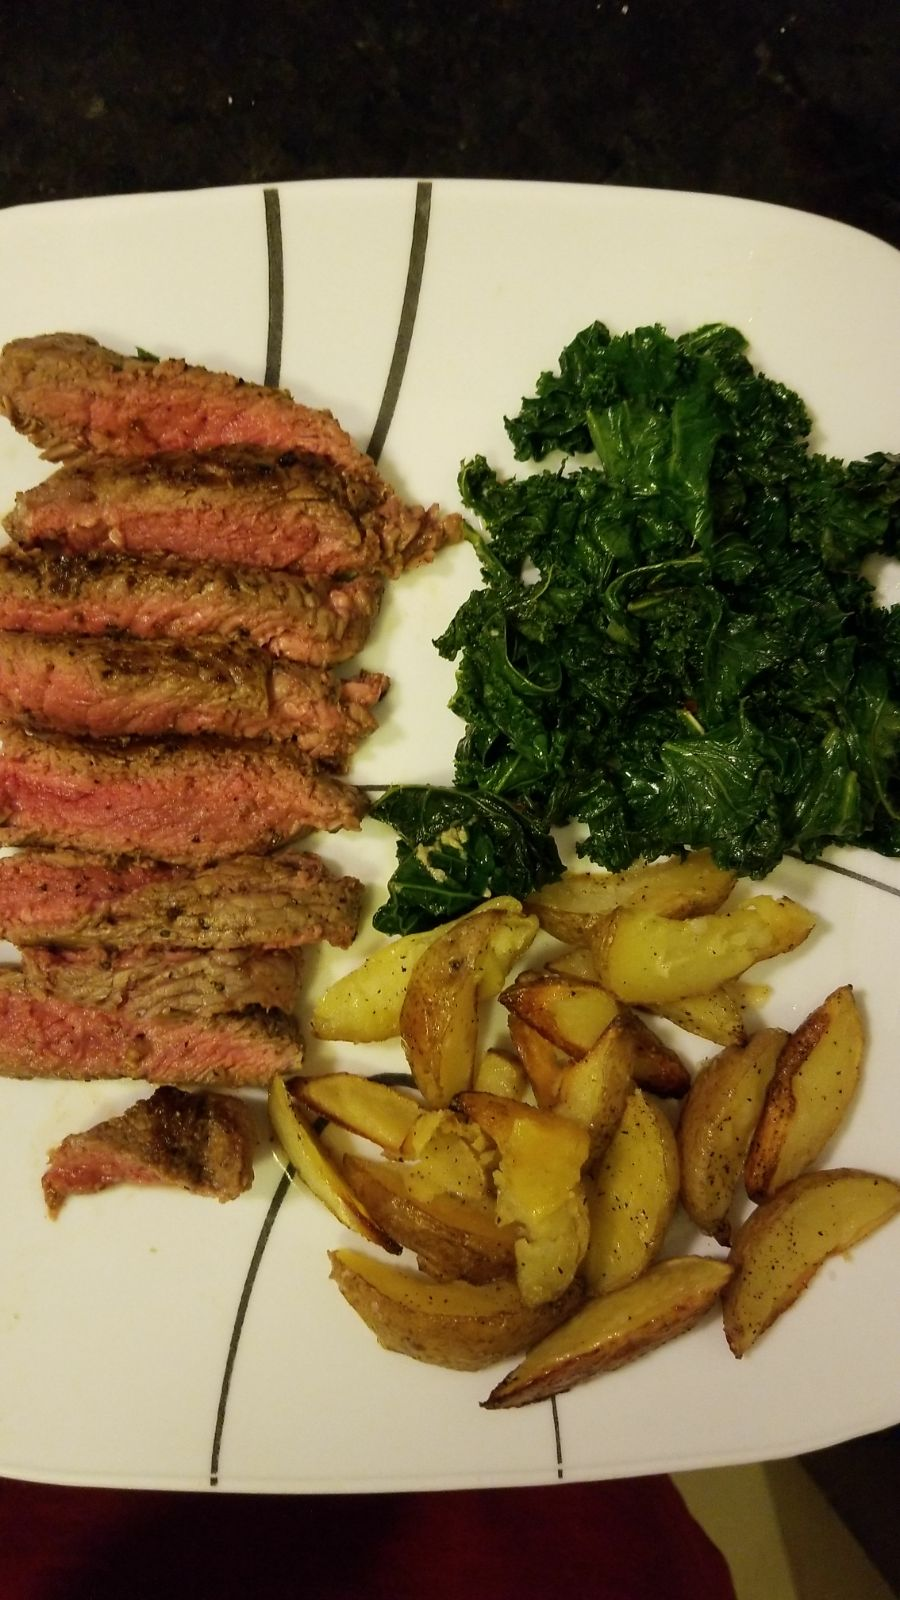 Sirloin w/sauteed kale and baked wedges